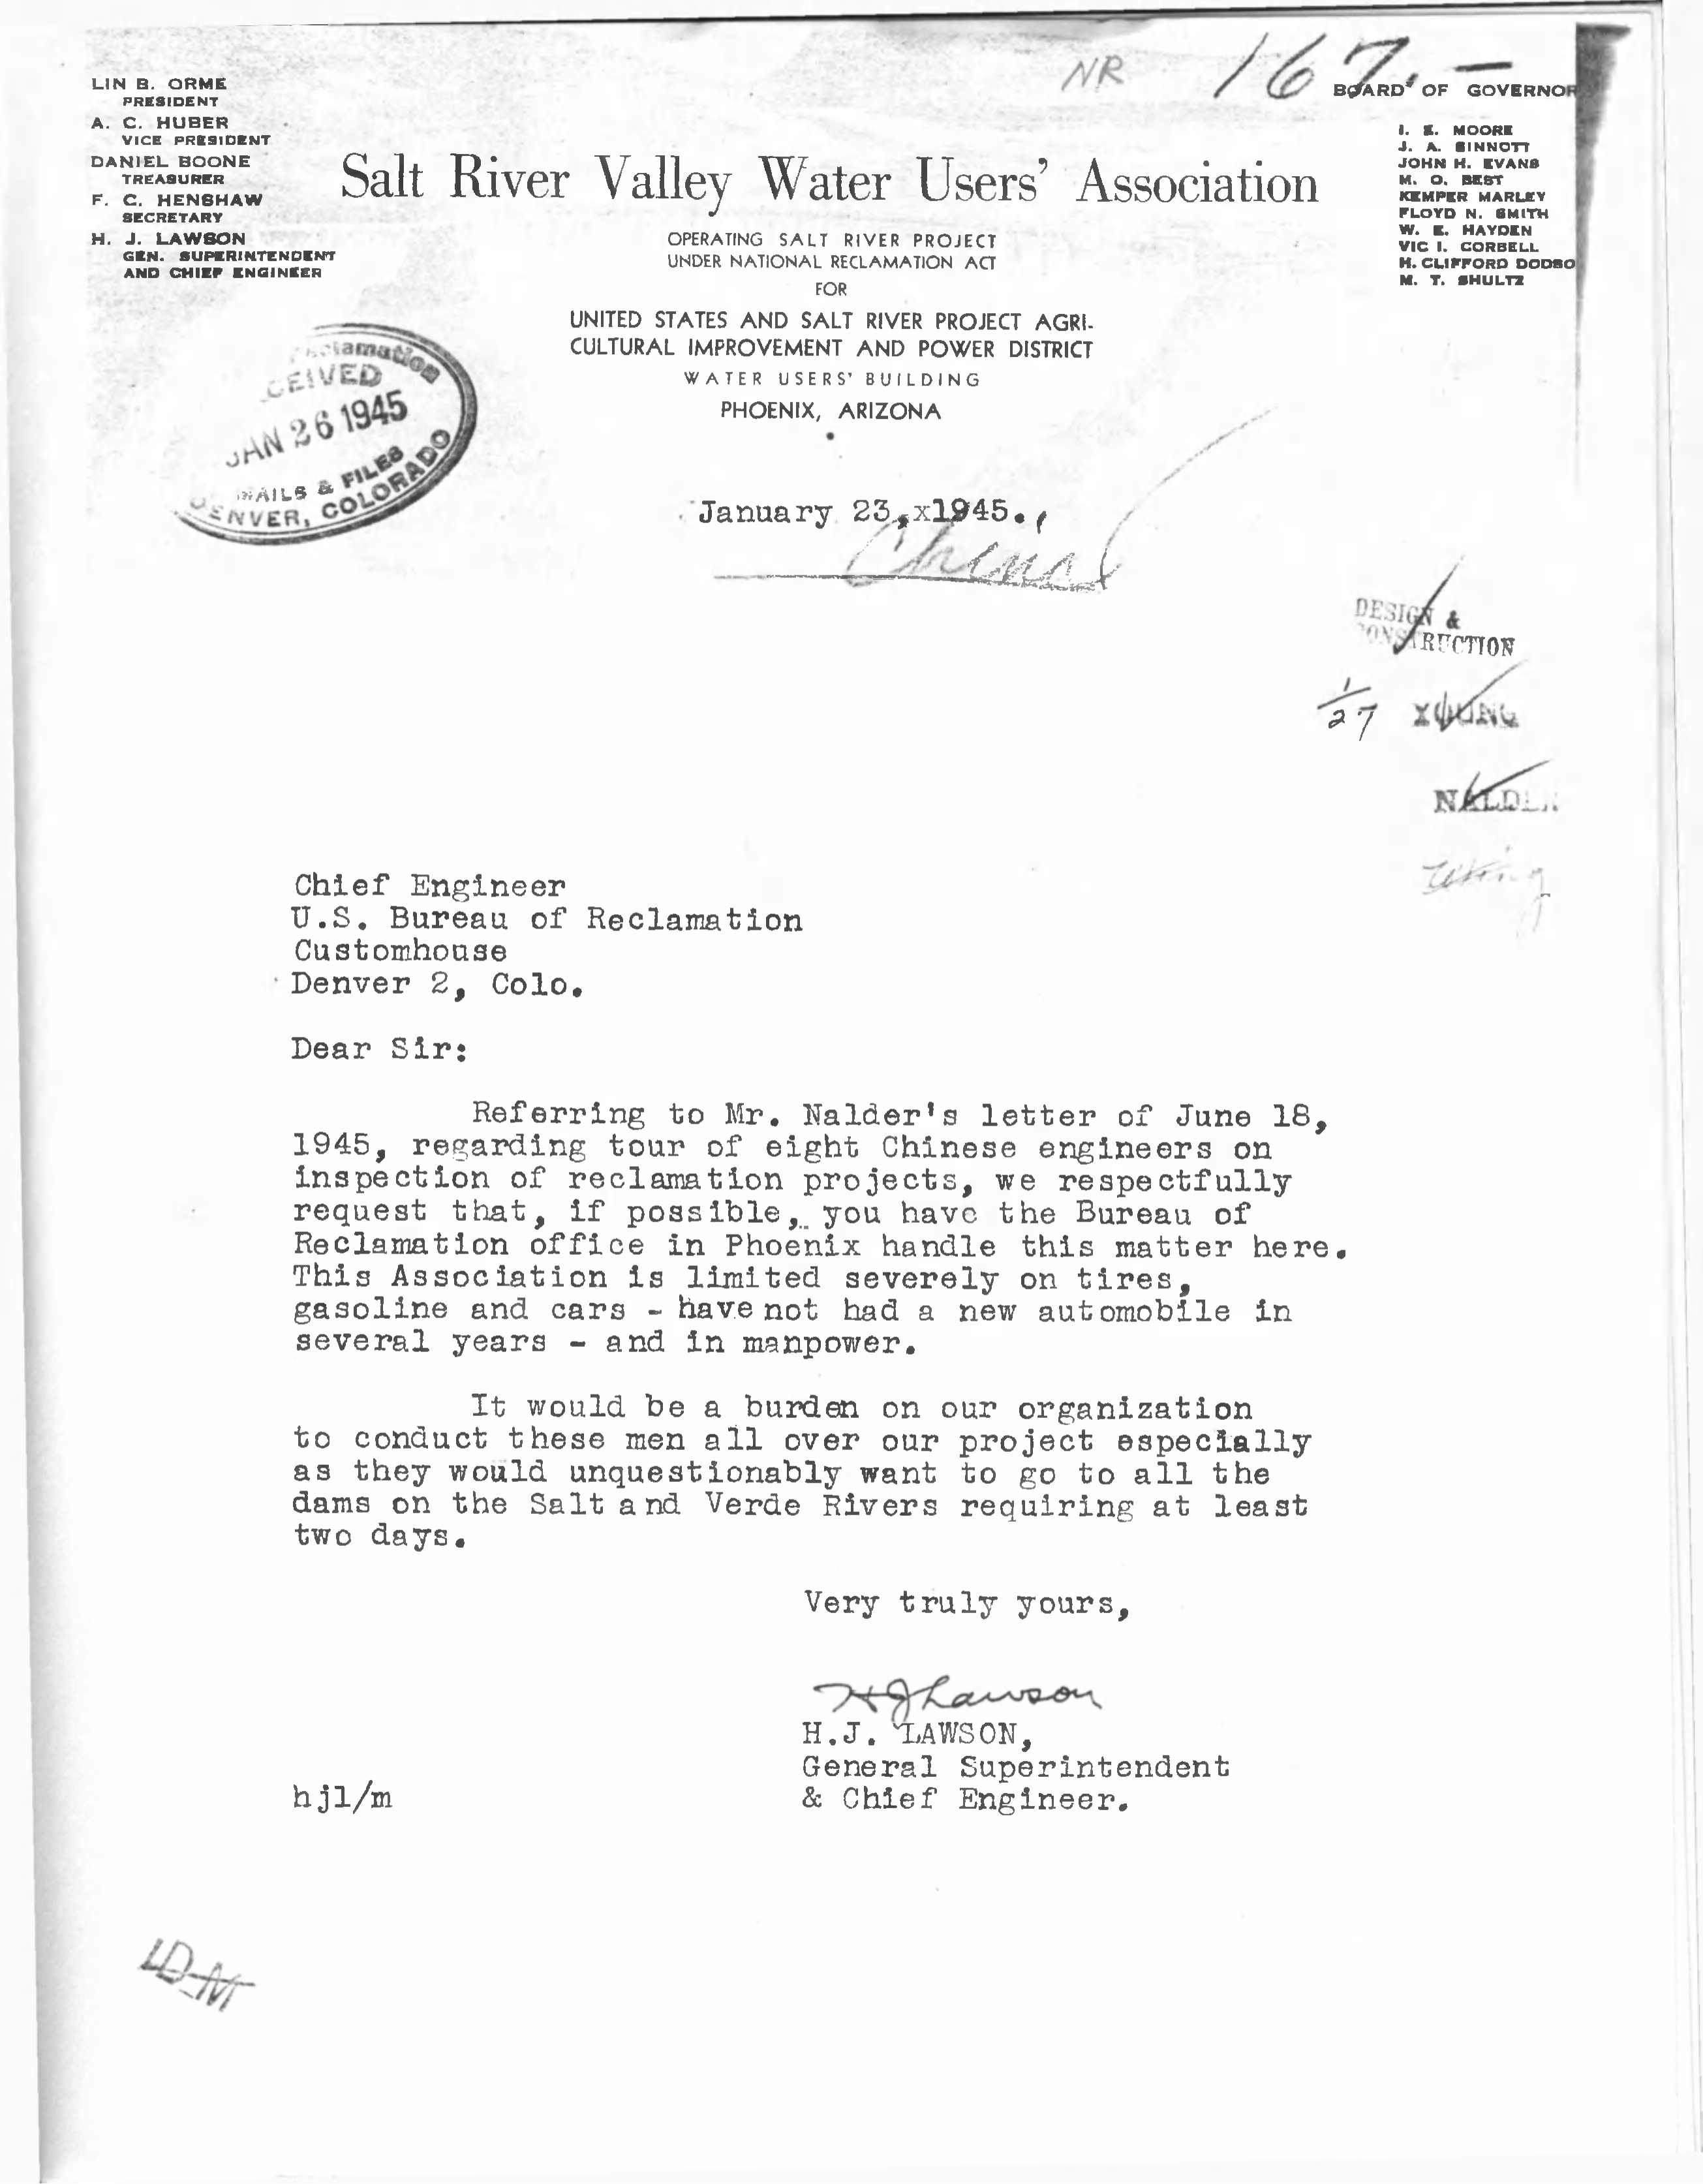 Letter from H  J  Lawson to Chief Engineer [U S  Bureau of